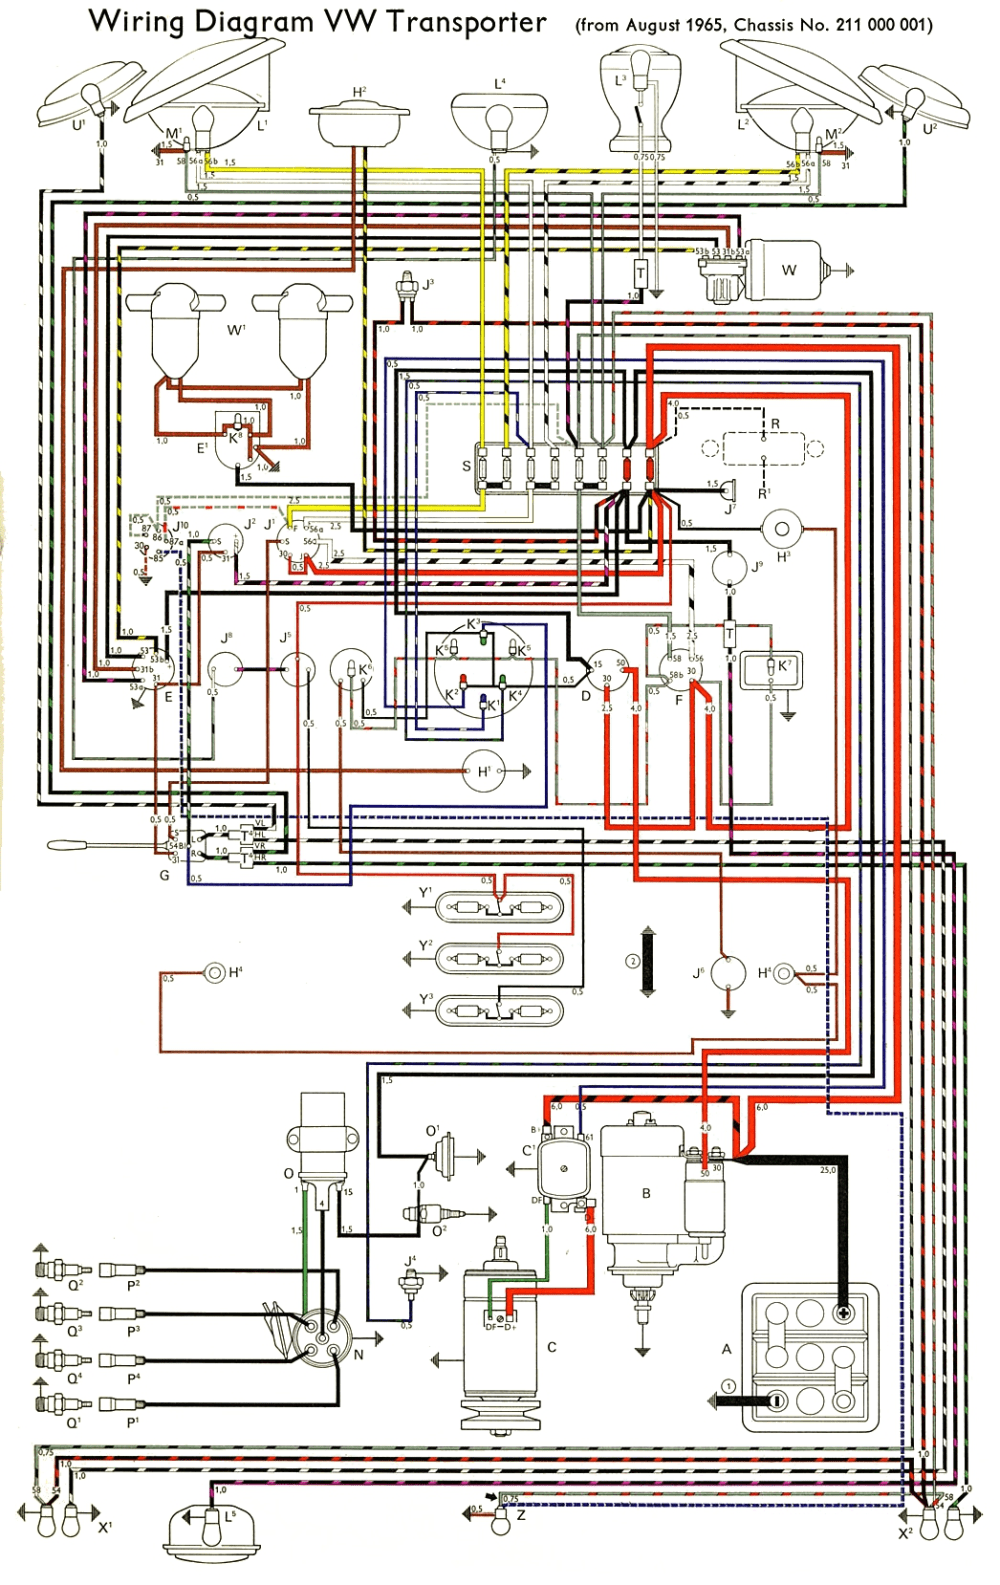 medium resolution of thesamba com type 2 wiring diagrams 1974 vw beetle fuse box diagram 2006 vw beetle fuse